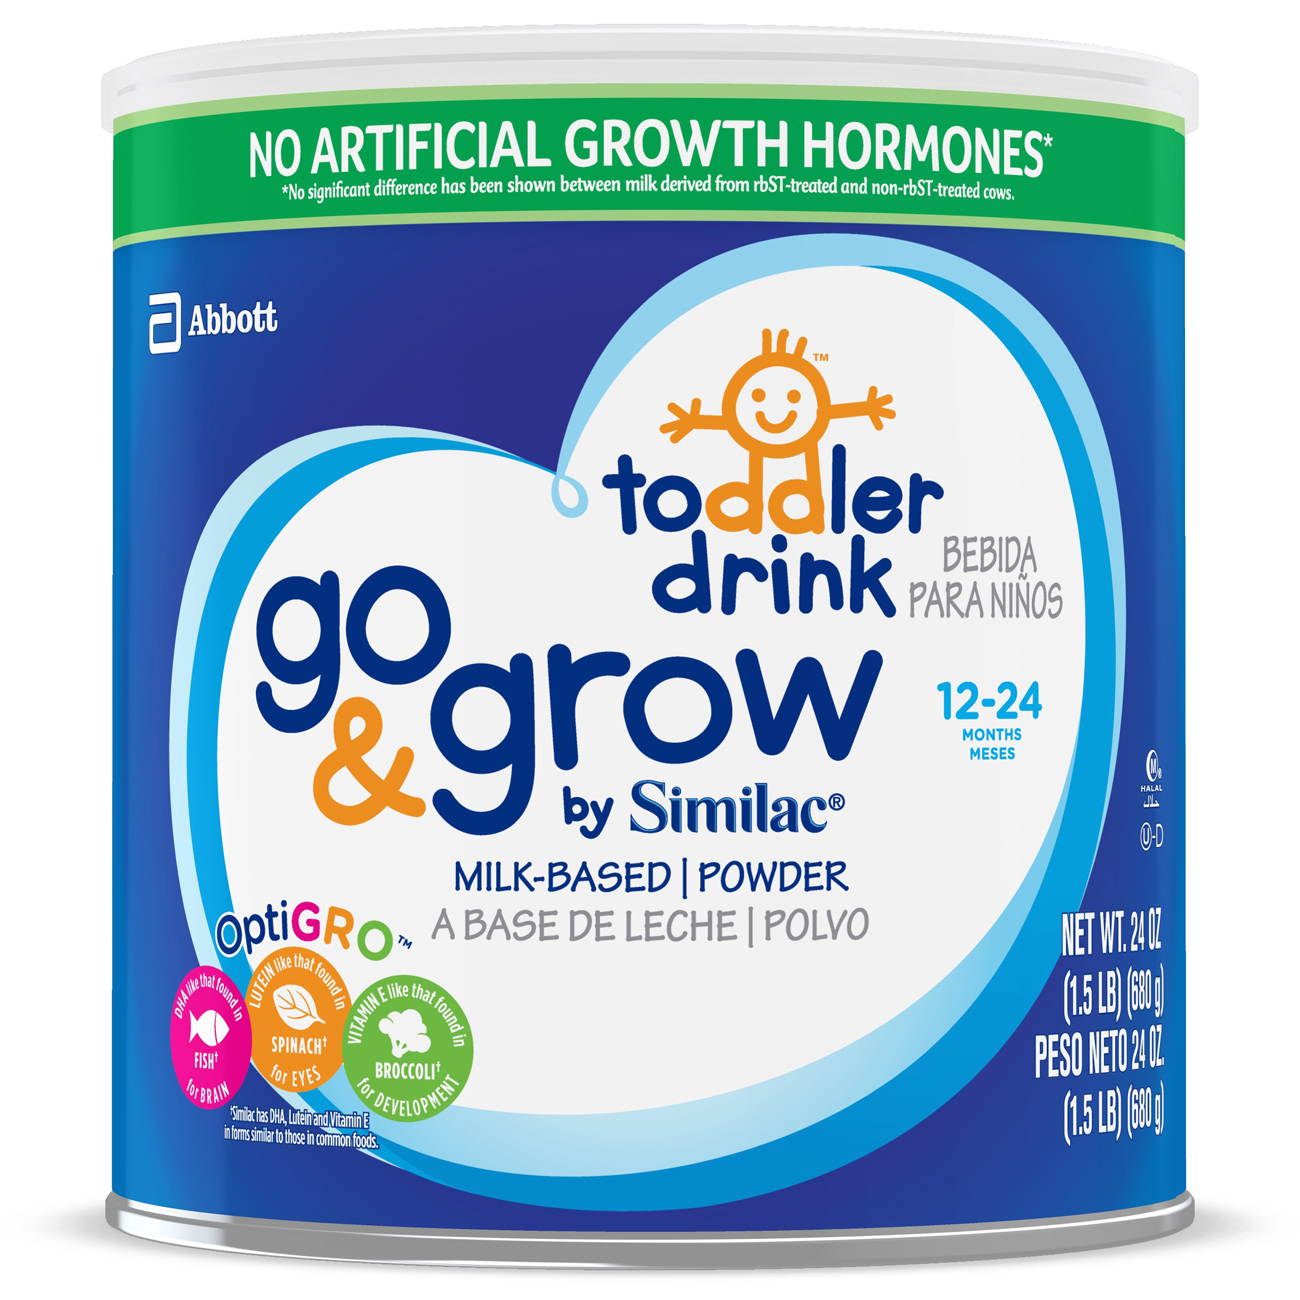 Similac Go & Grow by Similac Toddler Drink with 2'-FL HMO for Immune Support, Non-GMO, Powder, 24 oz